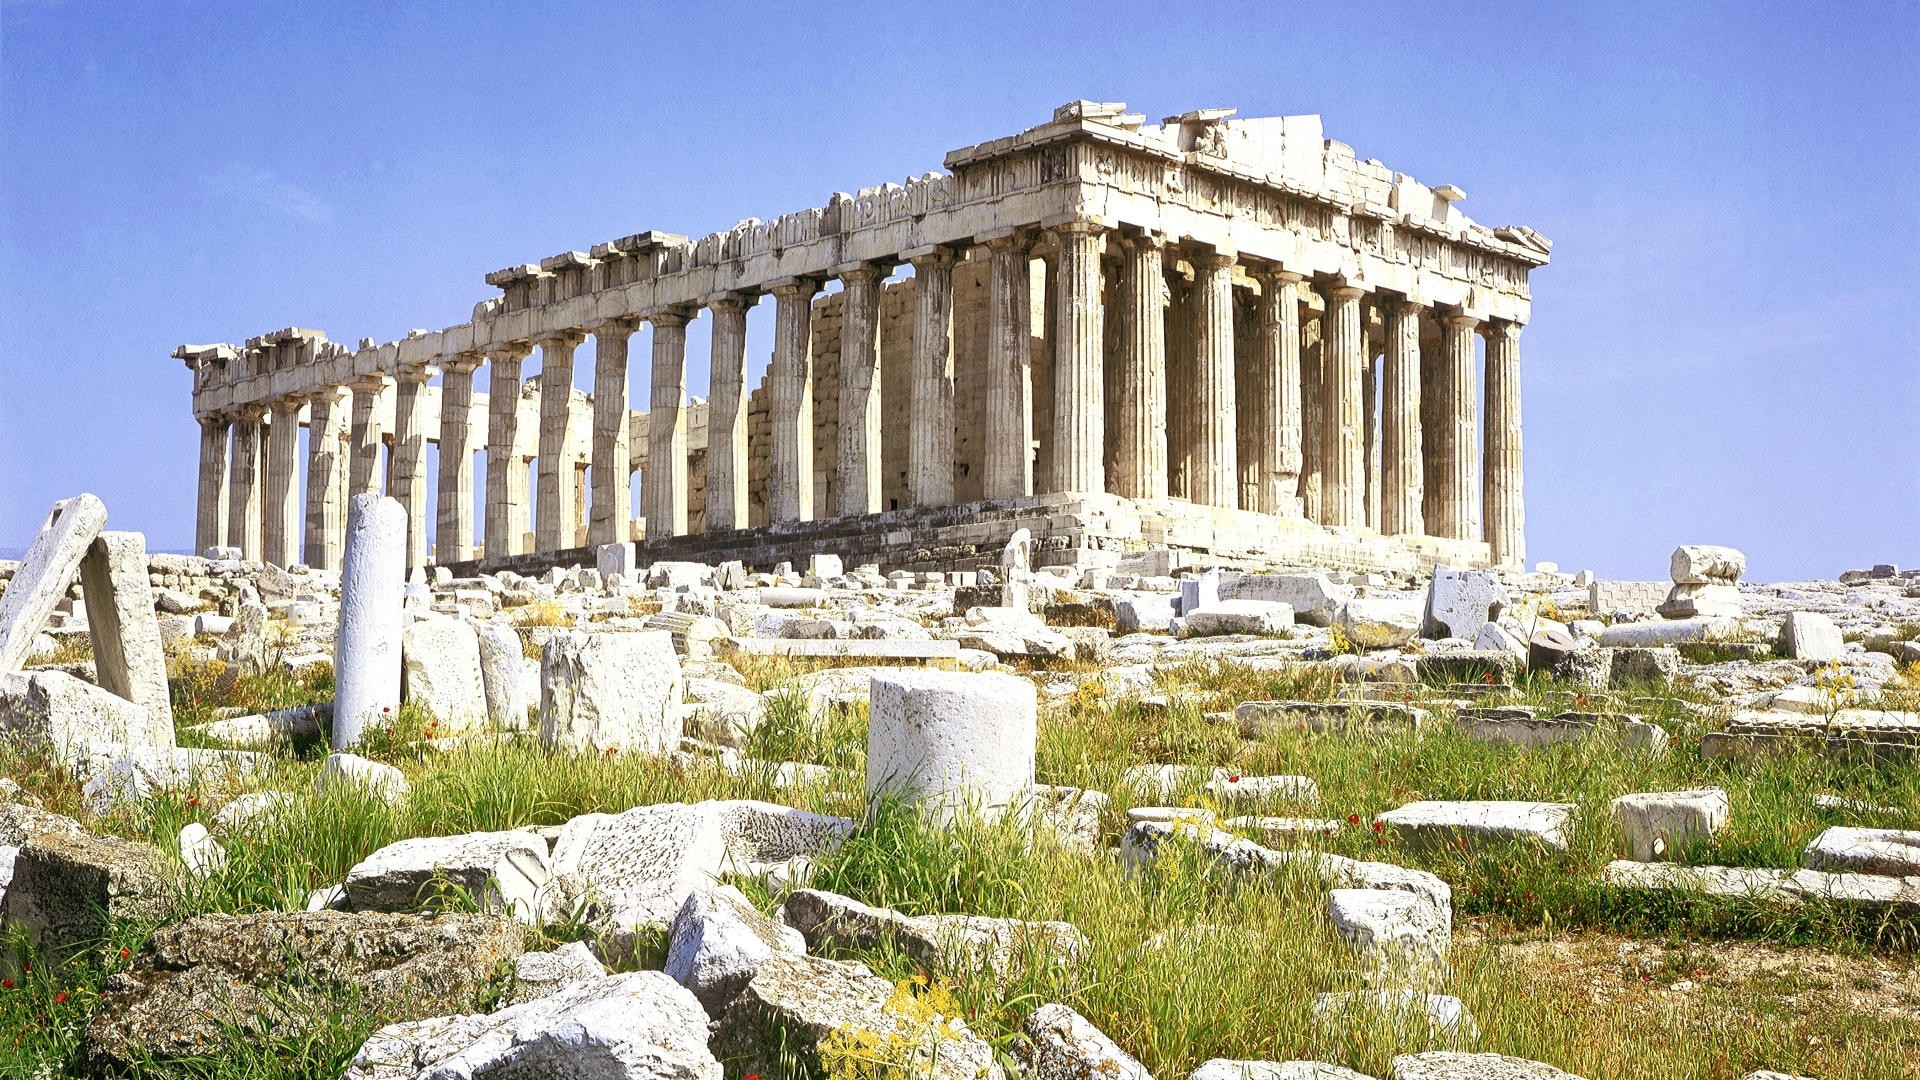 1920x1080 ... parthenon-acropolis-athens-greece-wallpaper-for--hdtv-1080p-15-176.jpg  ...